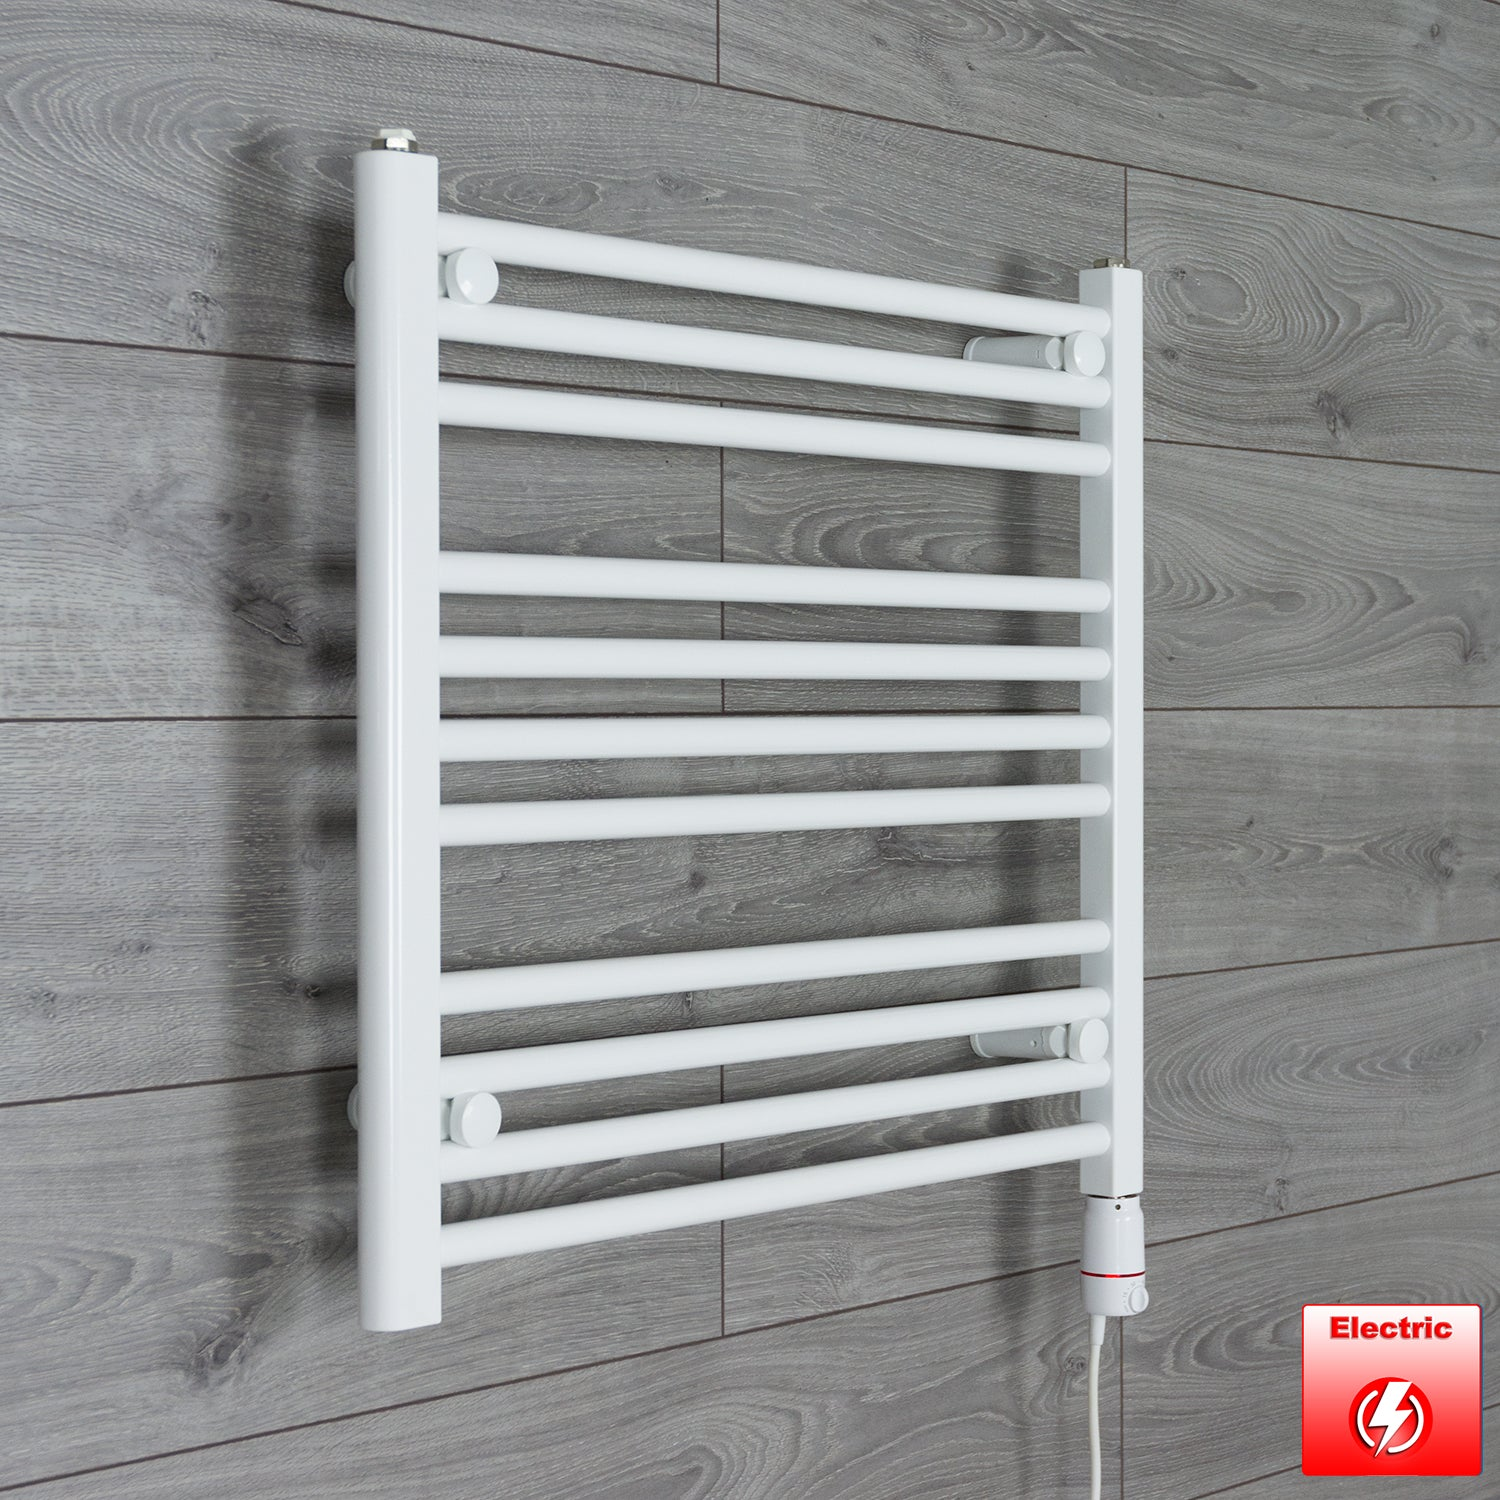 600mm Wide 600mm High Pre-Filled White Electric Towel Rail Radiator With Thermostatic GT Element